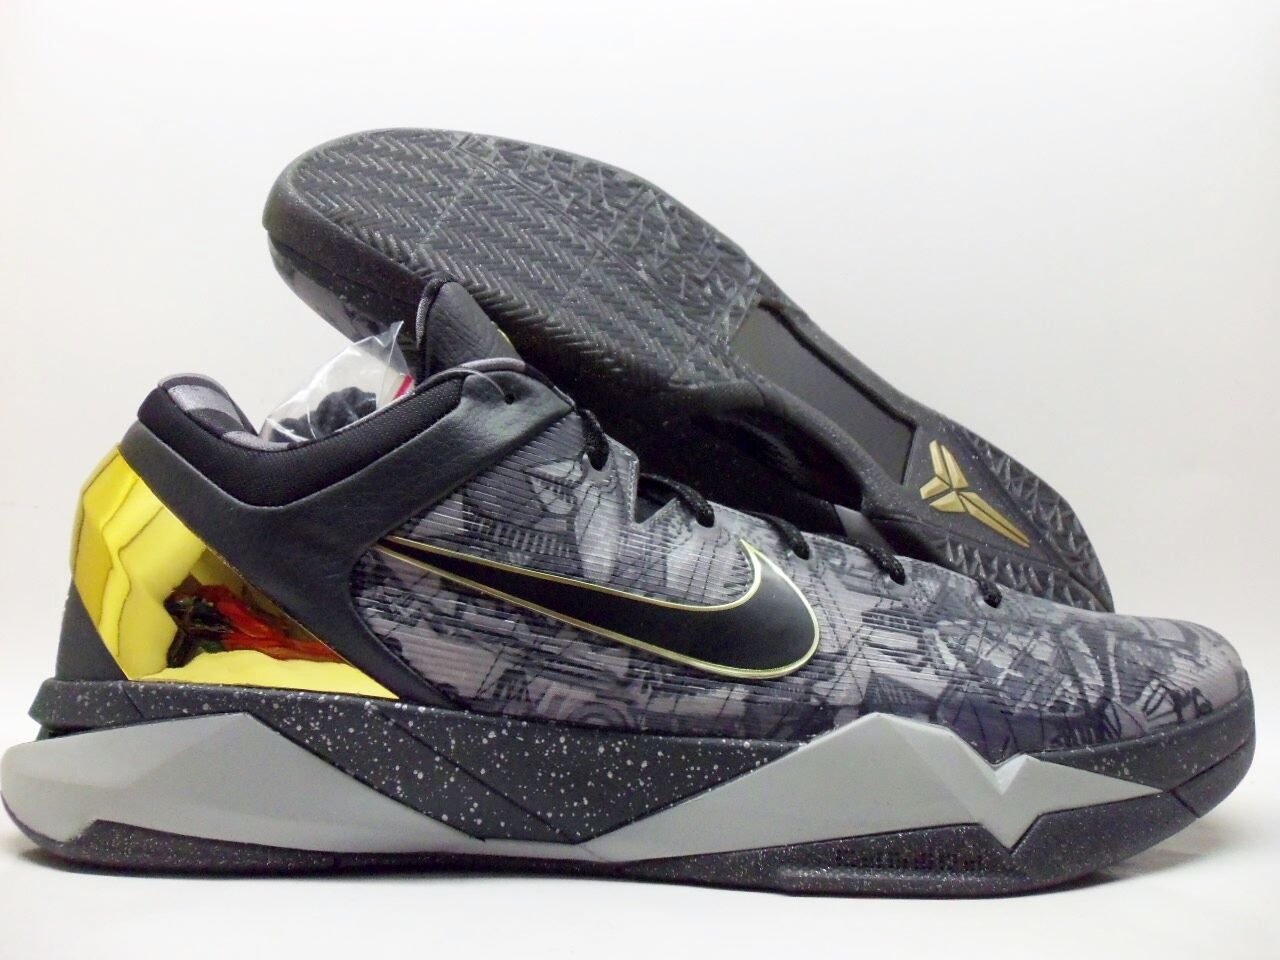 outlet store b5b09 1c885 good NIKE ZOOM KOBE VII 7 SYSTEM PRELUDE COOL GREY GOLD SIZE MEN S 18